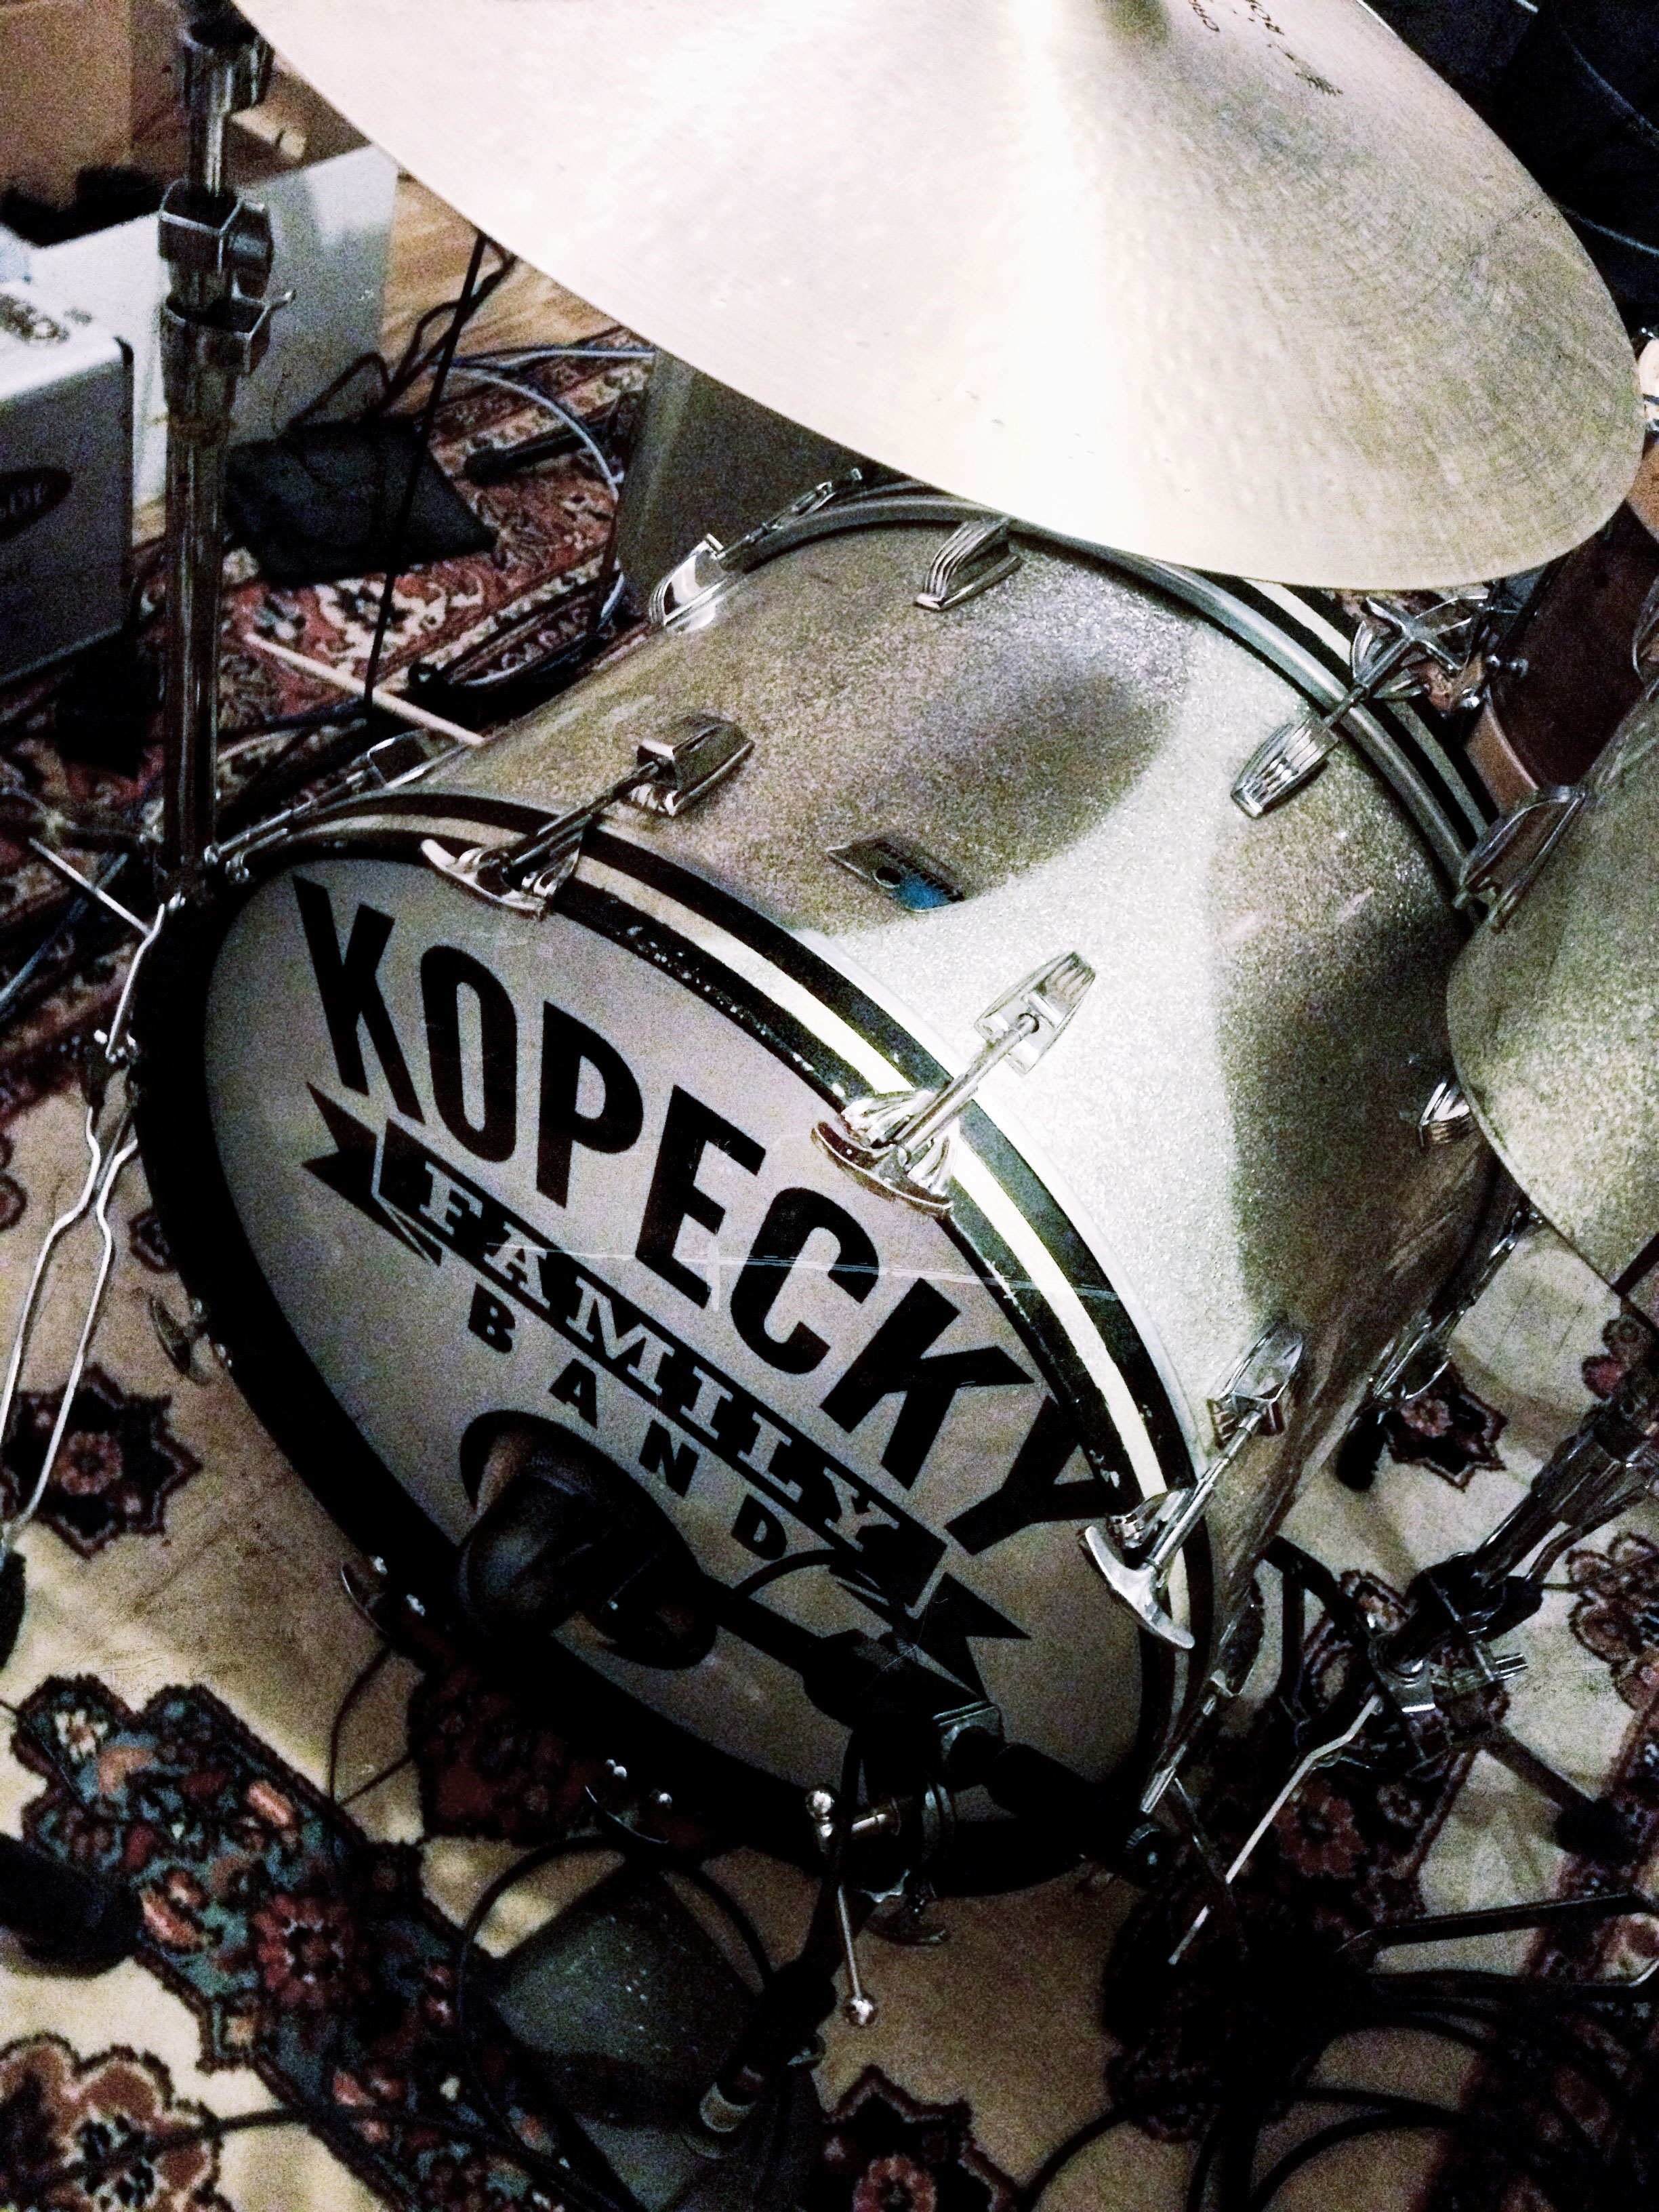 Kopecky Family Band Kick Drum